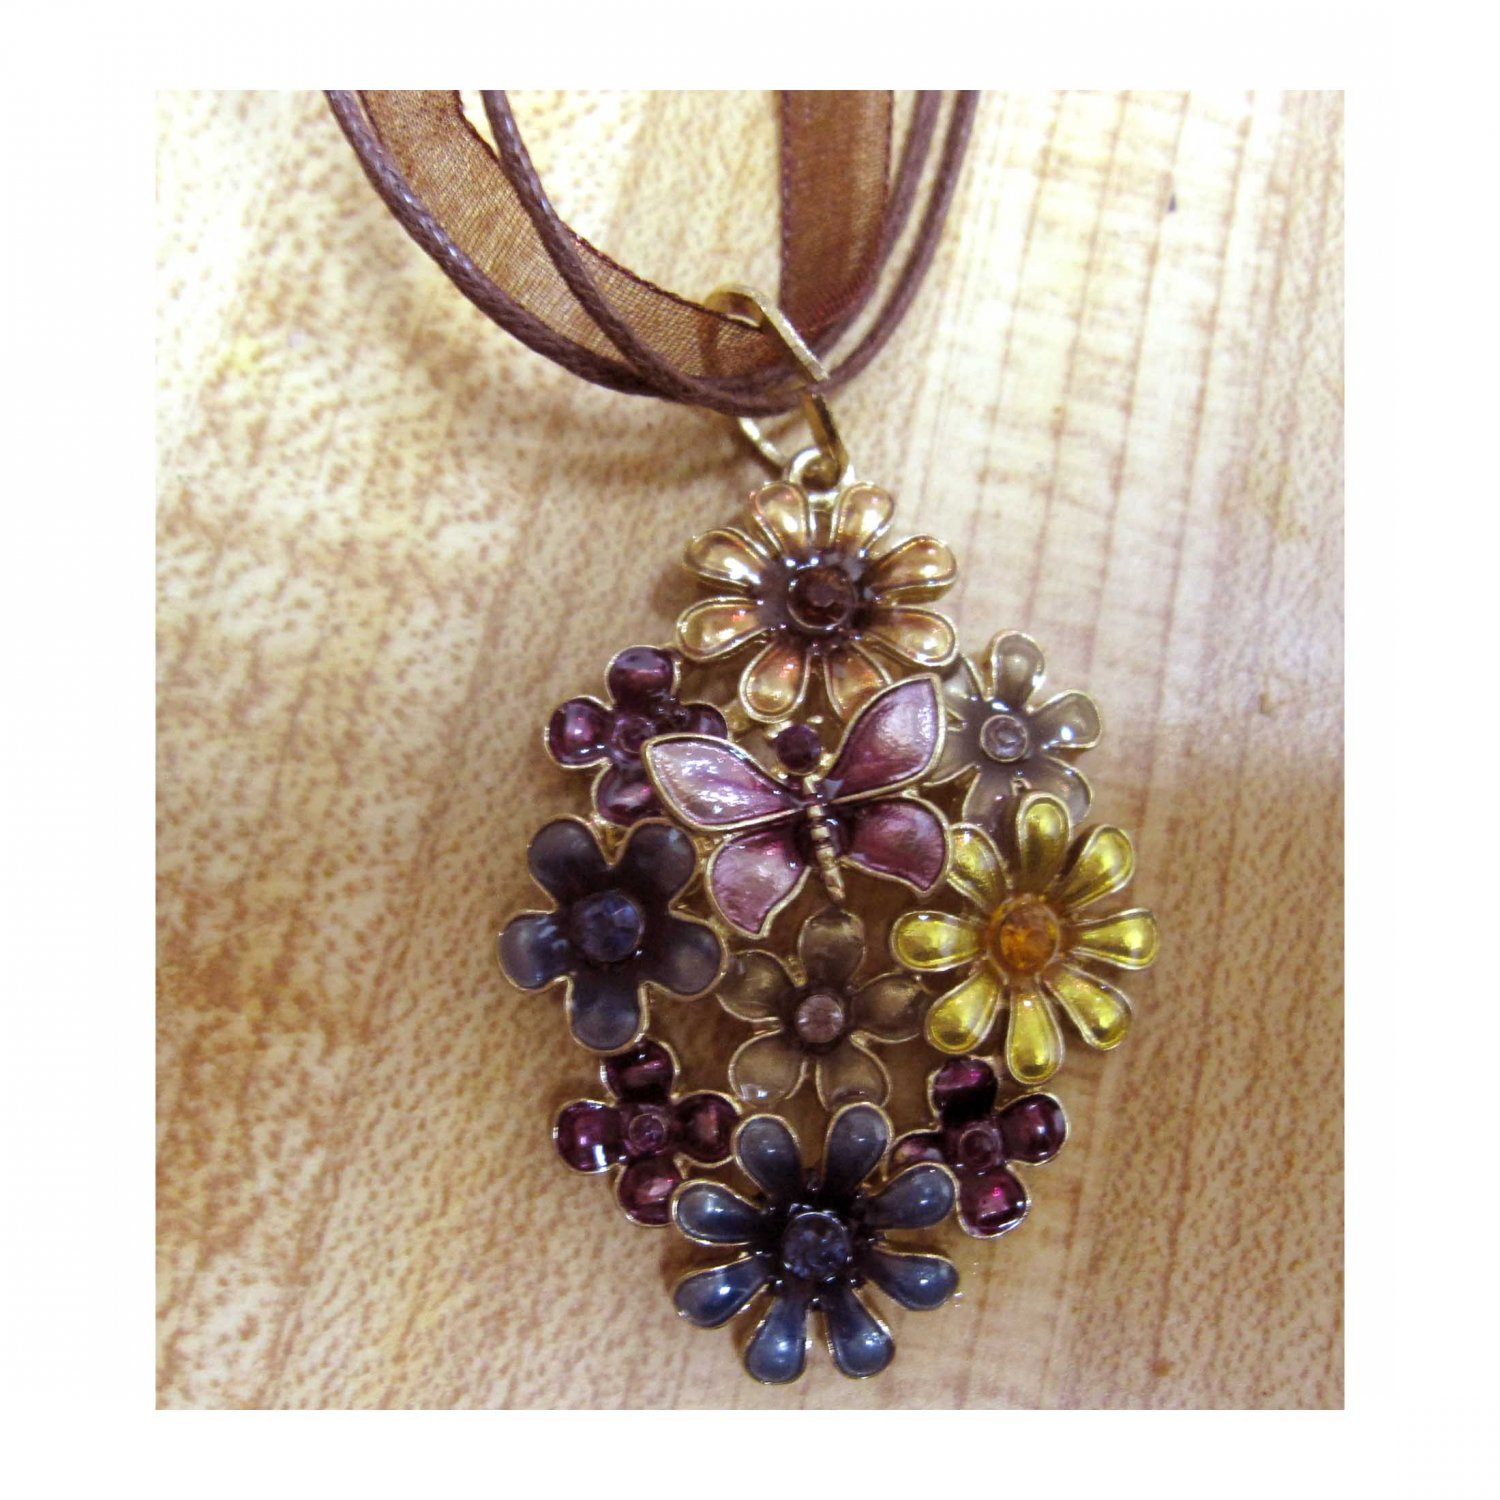 Flowers and butterfly pendant on organza cord necklace